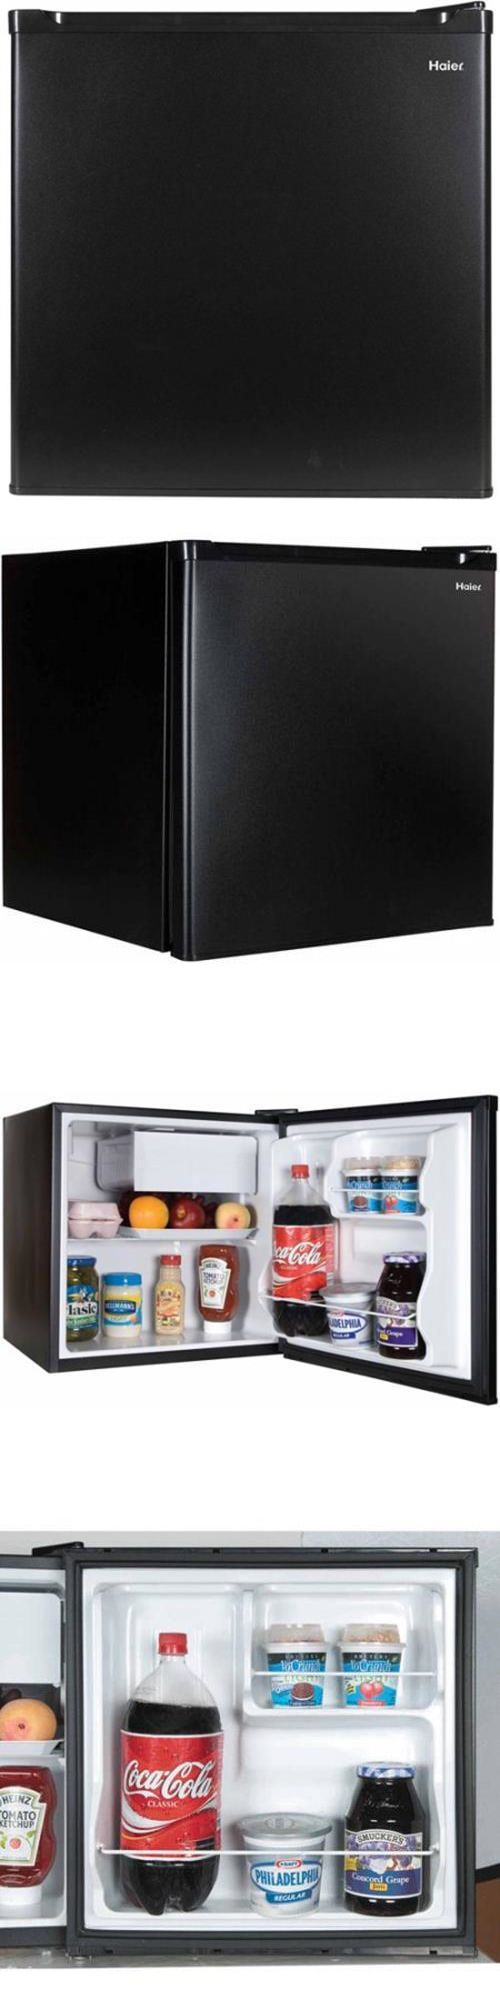 Mini Fridges 71262: Haier 1.7-Cu. Ft. Refrigerator Black Compressor Cooling Free Shipping *New* -> BUY IT NOW ONLY: $67.45 on eBay!